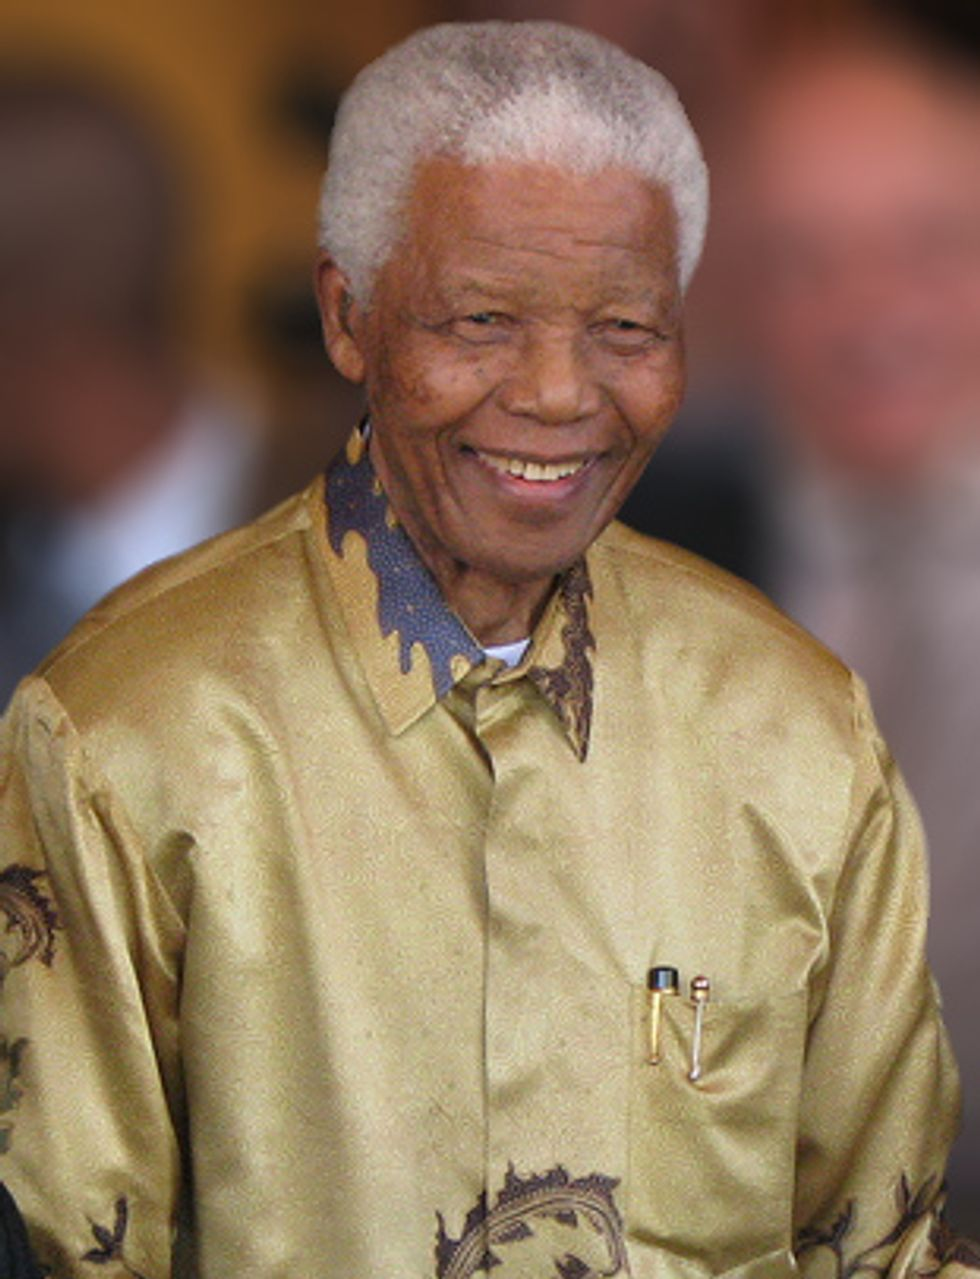 25 Years Ago Nelson Mandela Walked Into Freedom